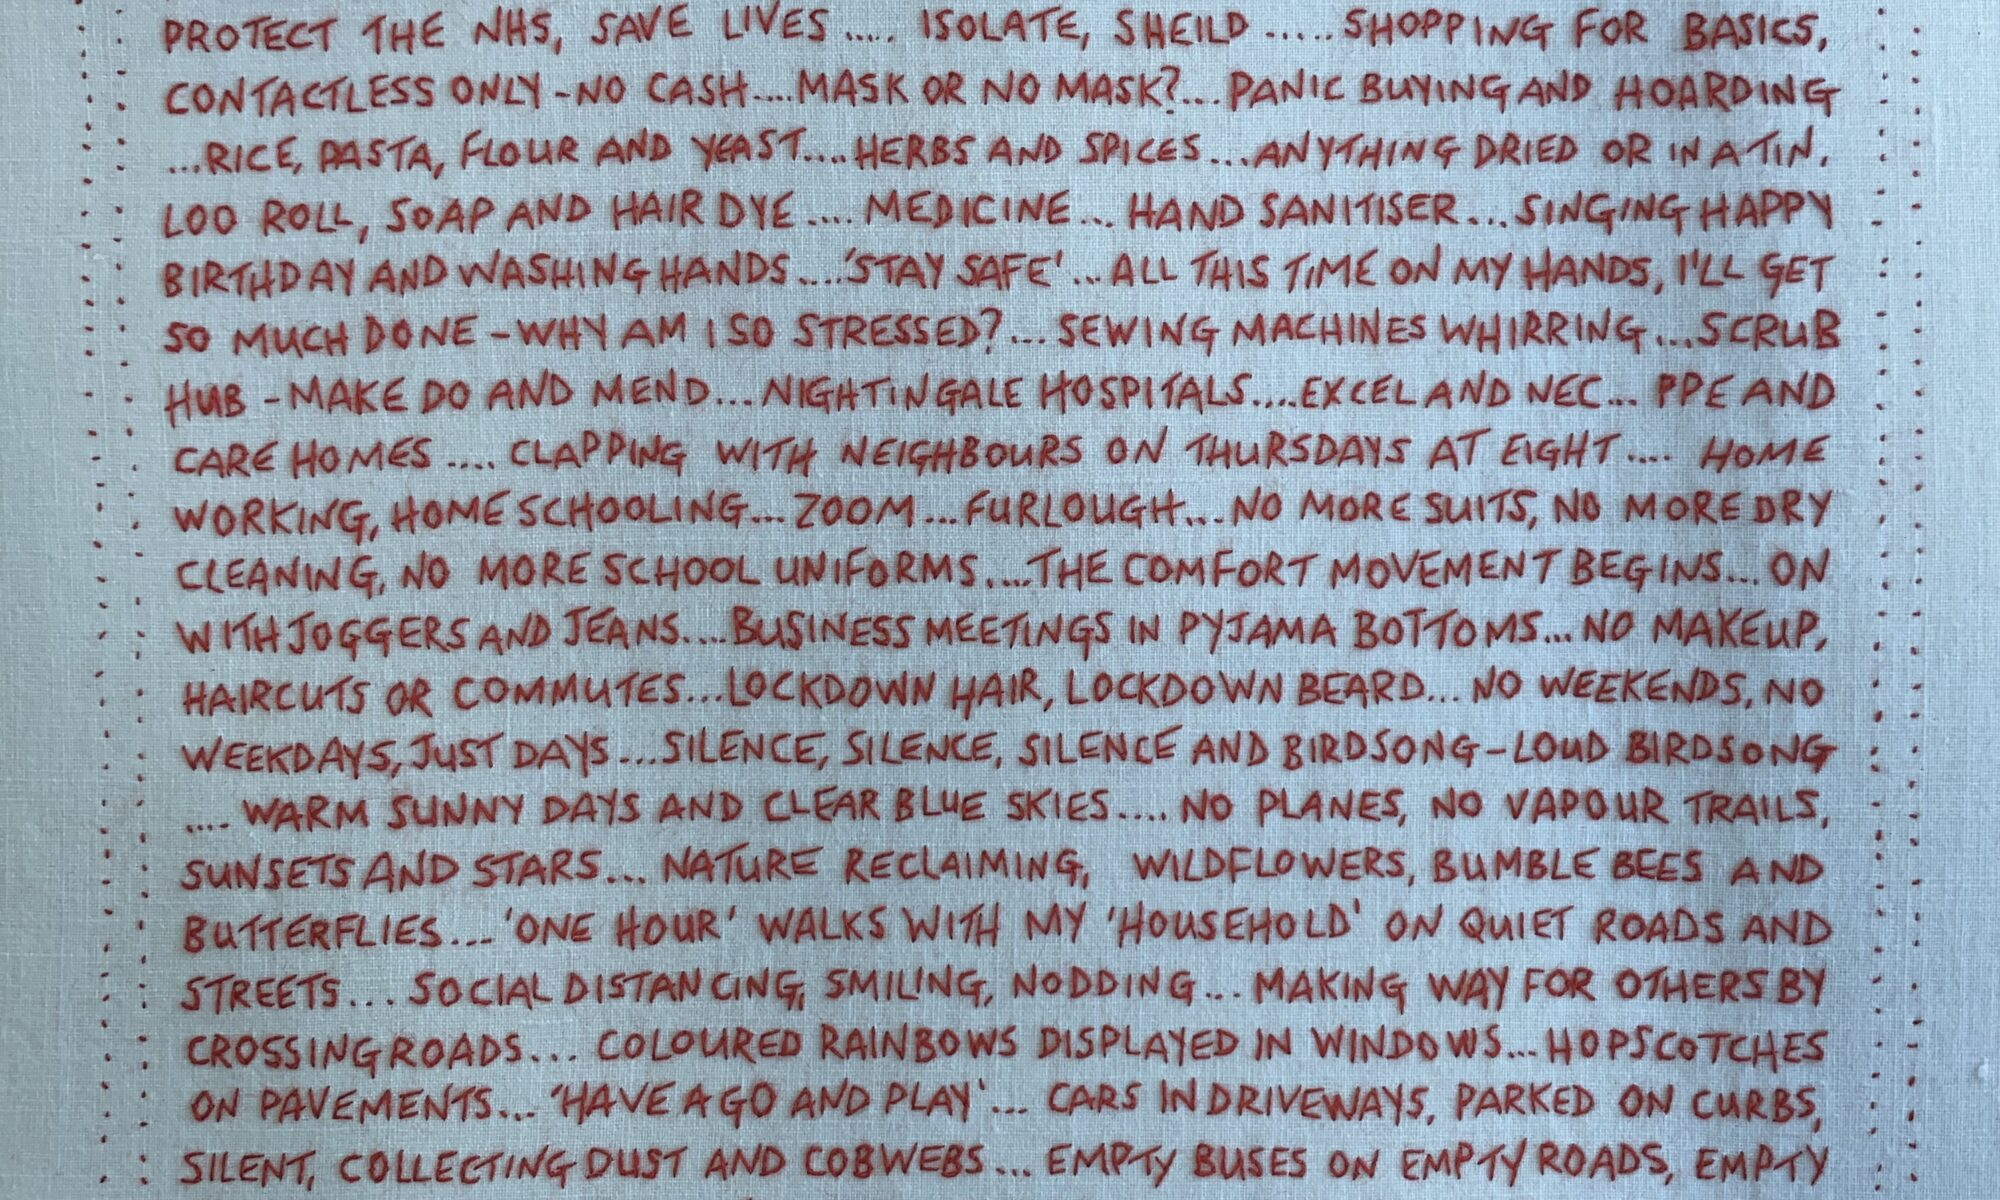 ovid 19. Part 1 - A Red hand embroidery documenting our shared experiences from 2020